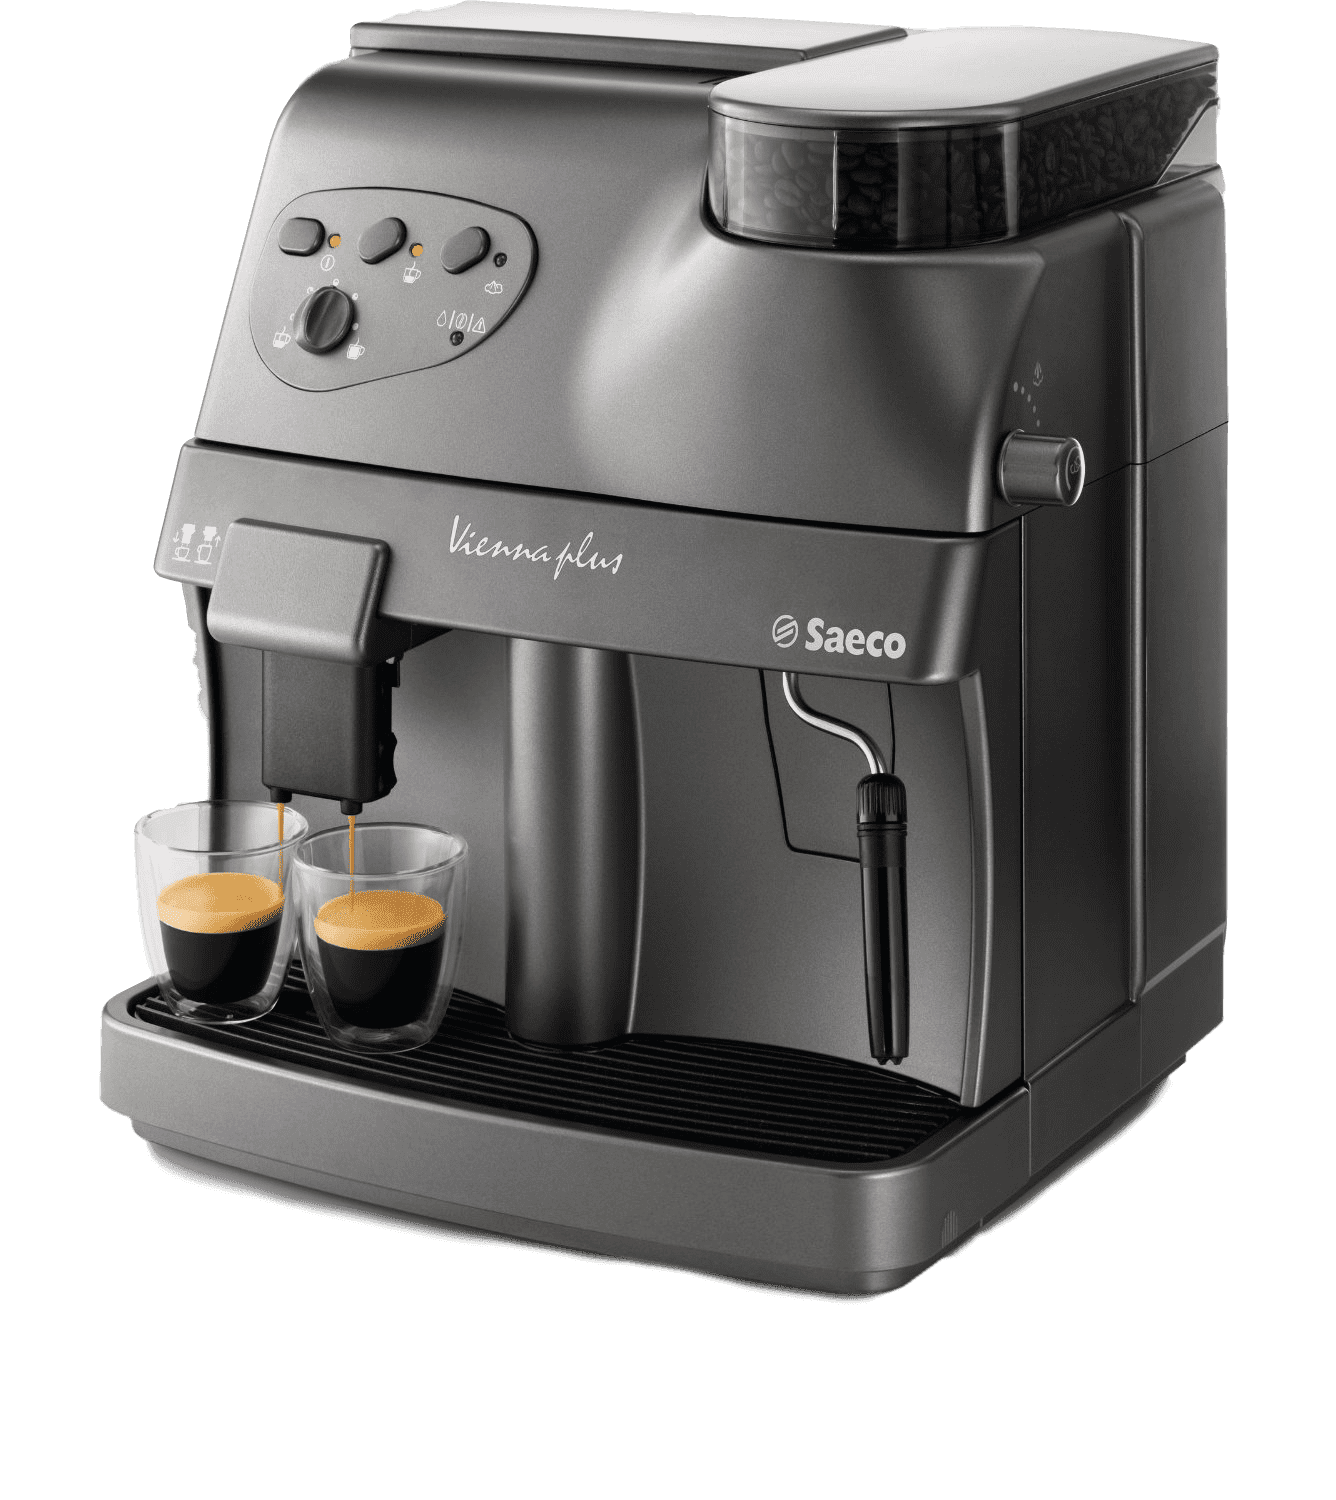 Types Of Espresso Machines And How To Choose The Right